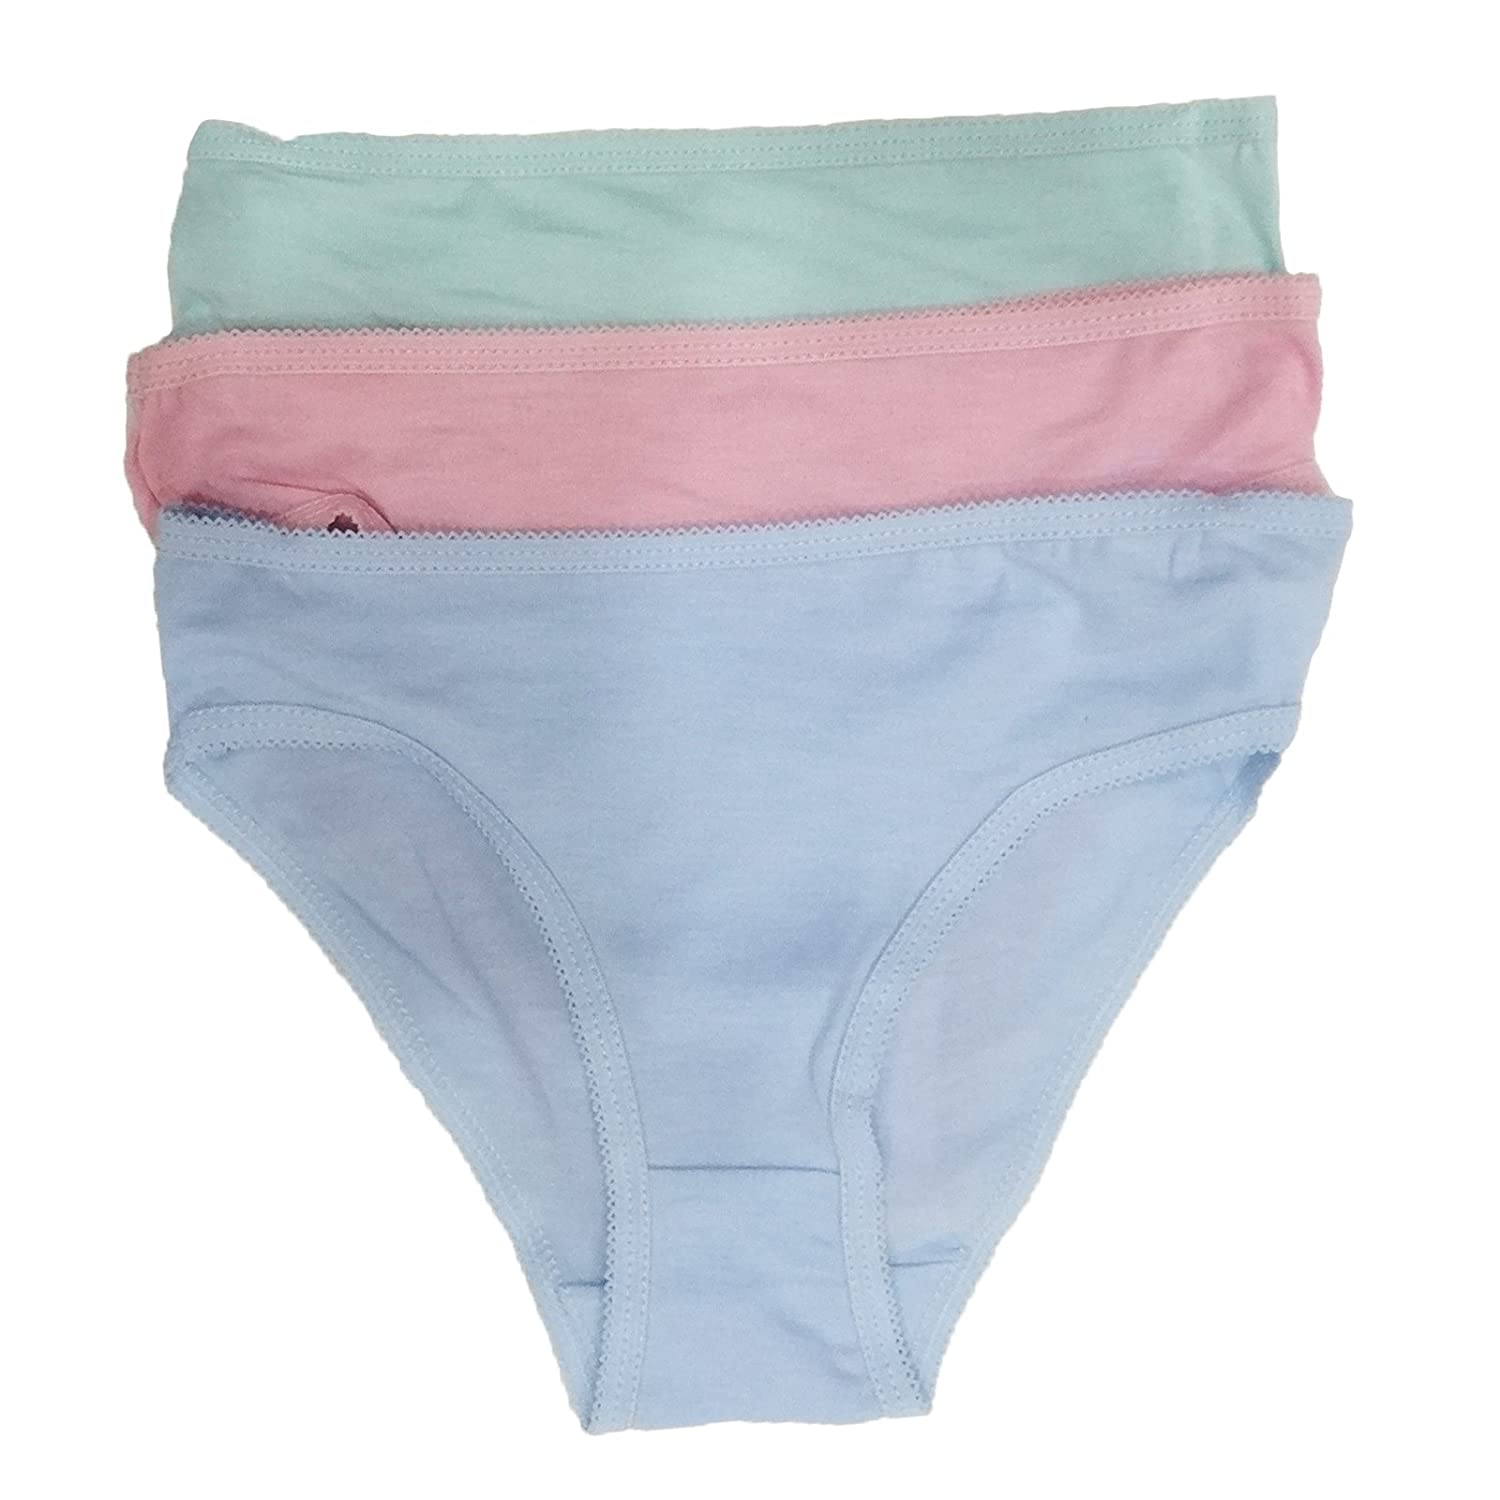 12 Pack Girls Knickers Kids Underwear Plain Cotton Briefs Pants Childrens Shorts Size 3-12 Years New